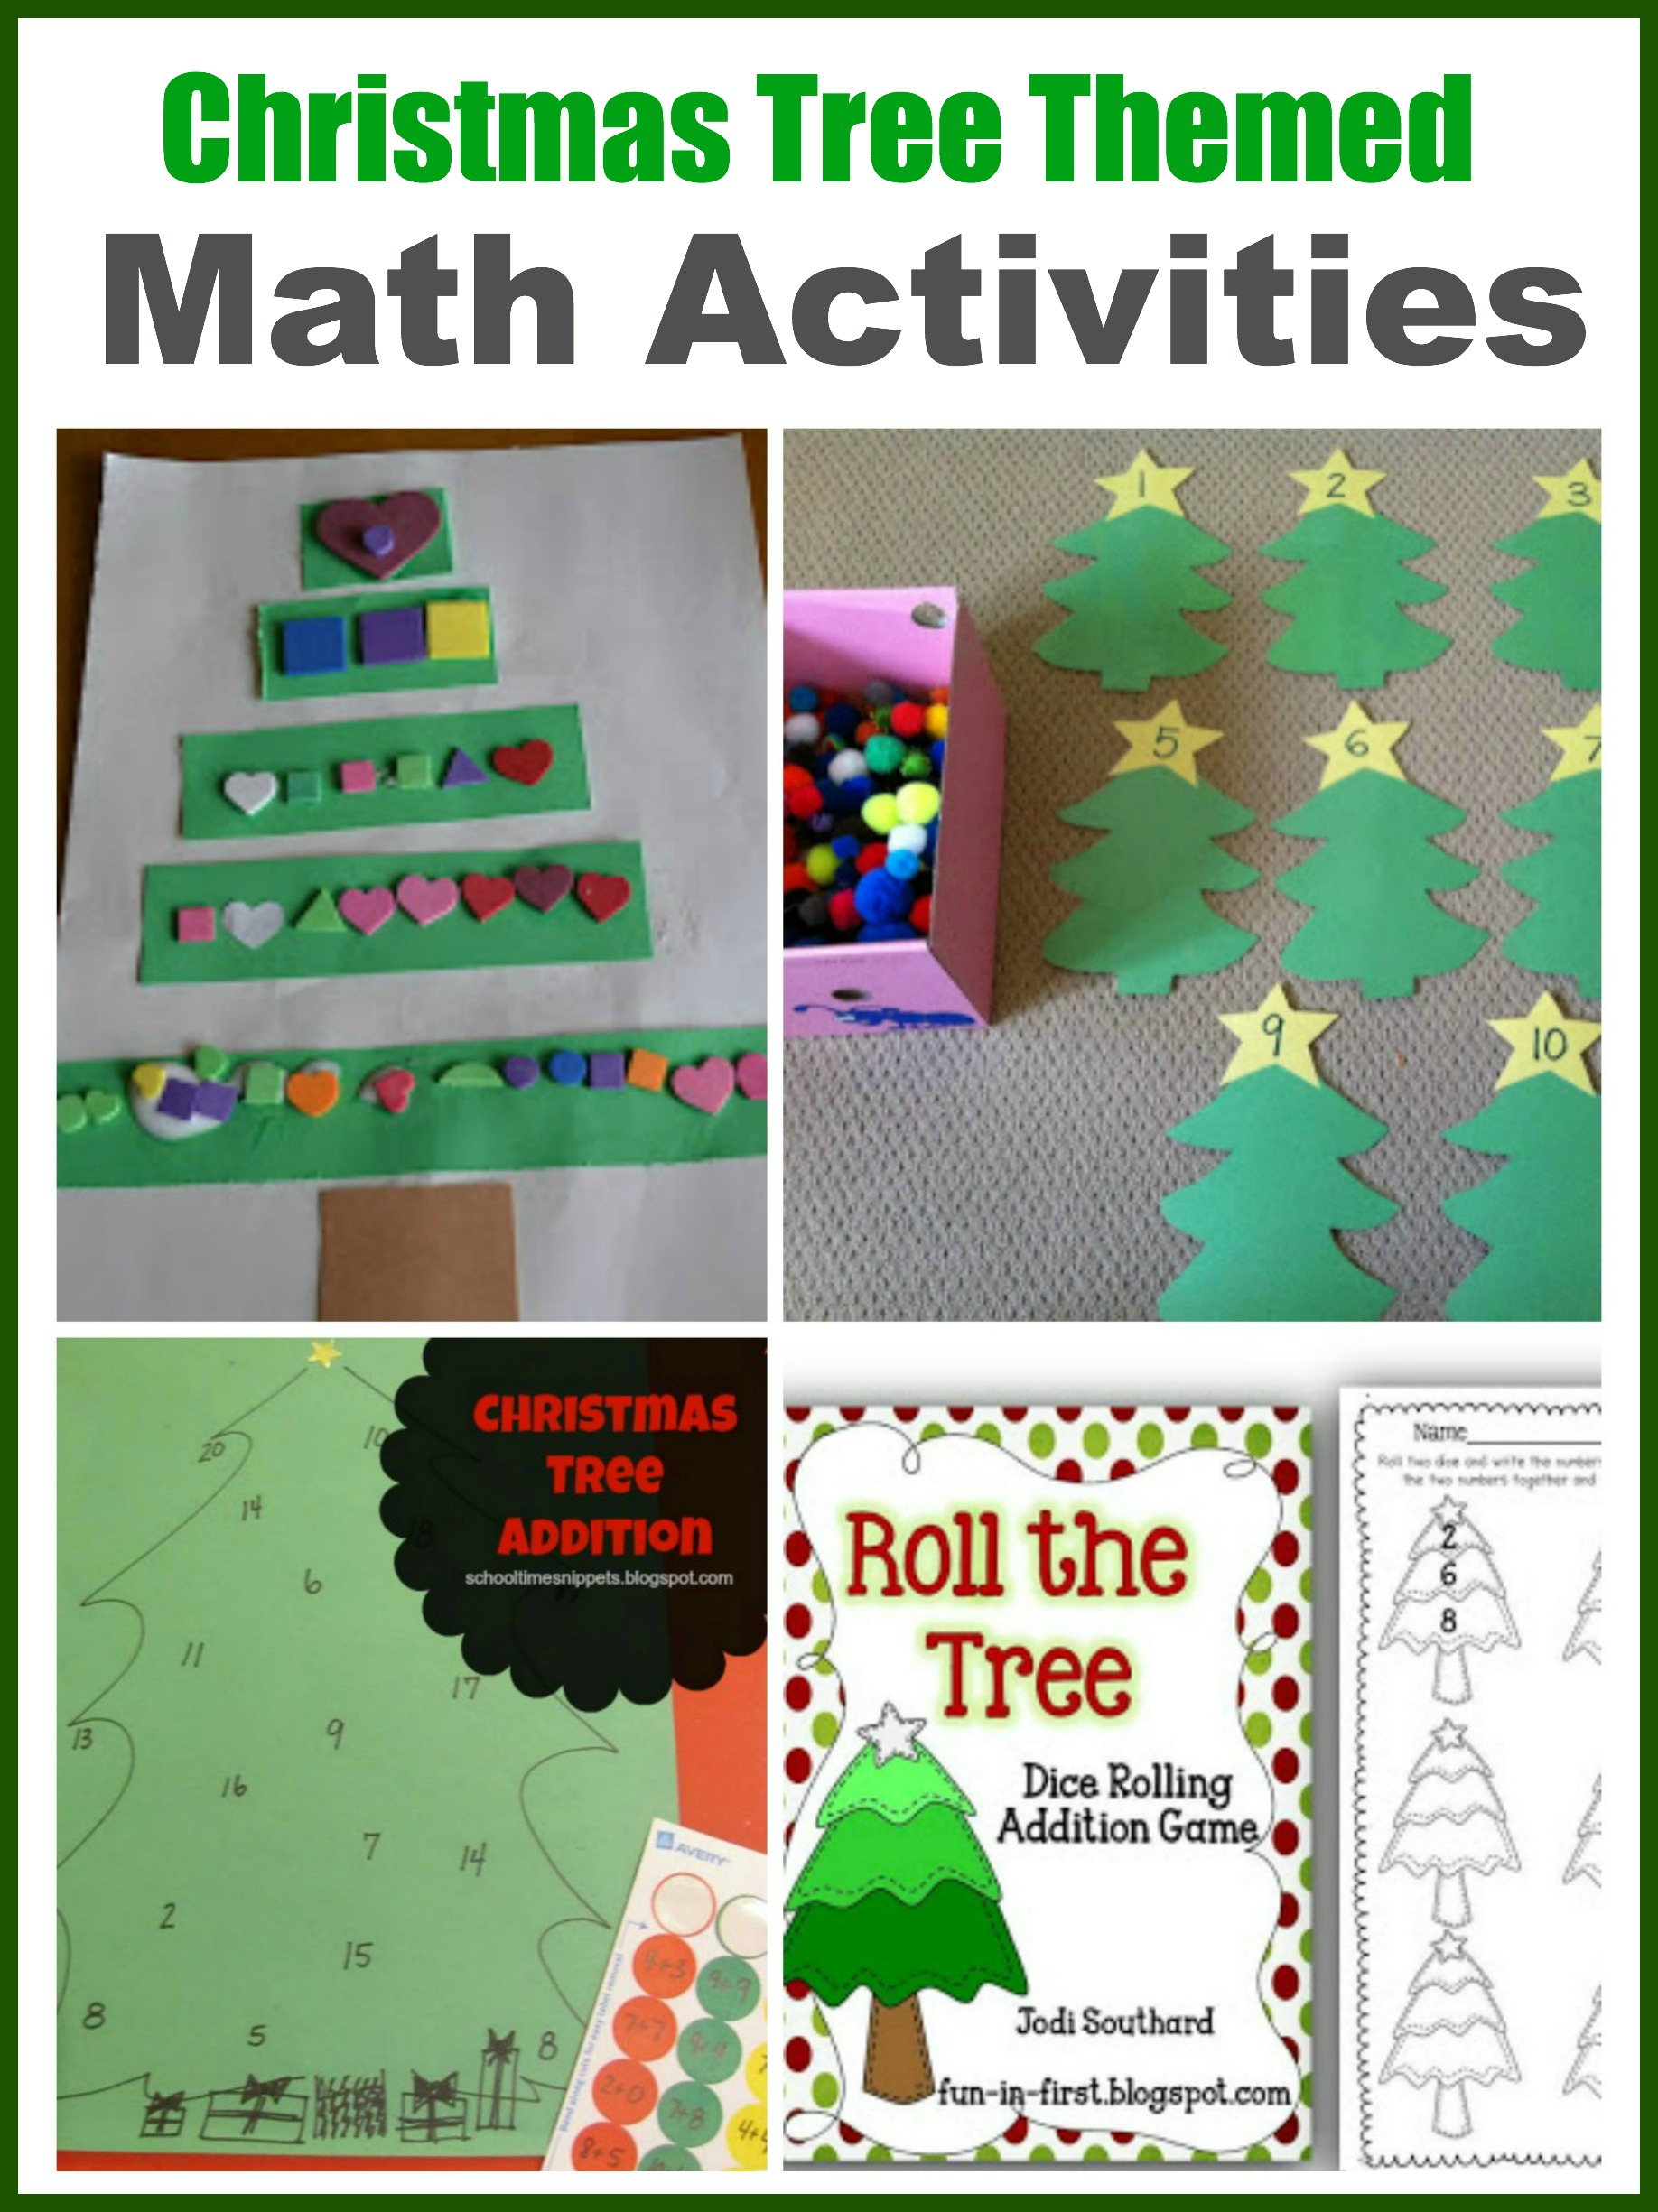 Christmas Tree Theme For Preschool And Early Elementary